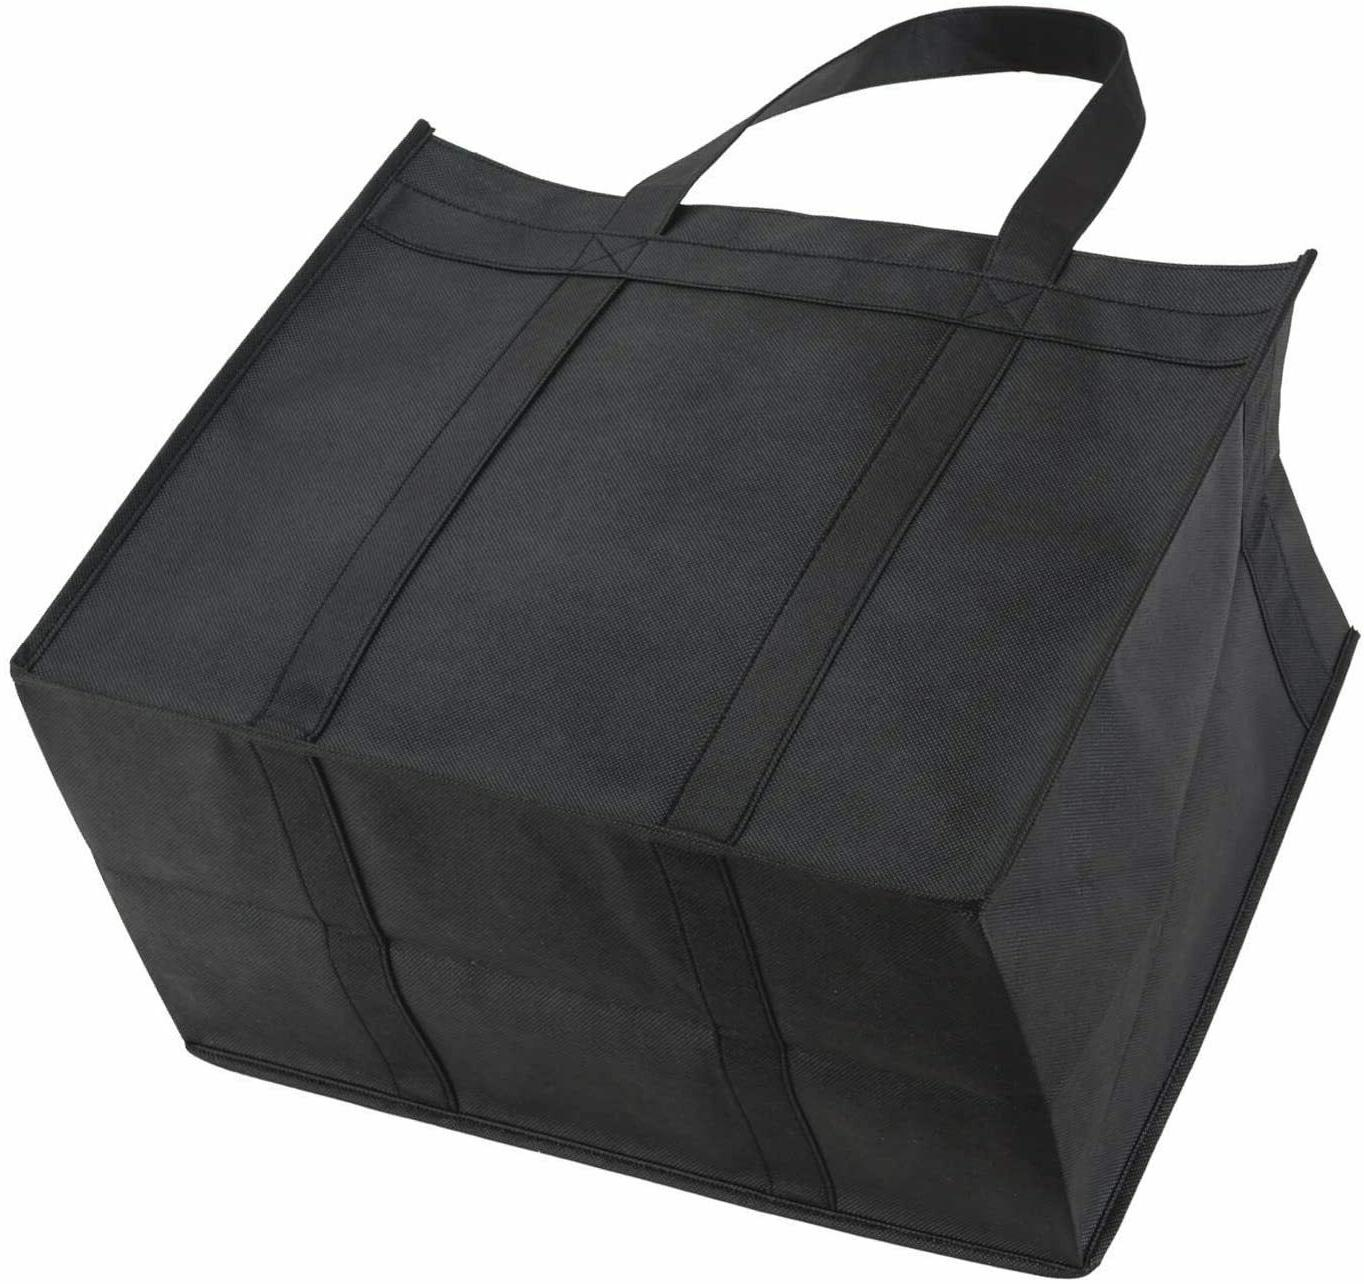 5 Pack Grocery Bags,Heavy Duty Tote,Foldable,Washable